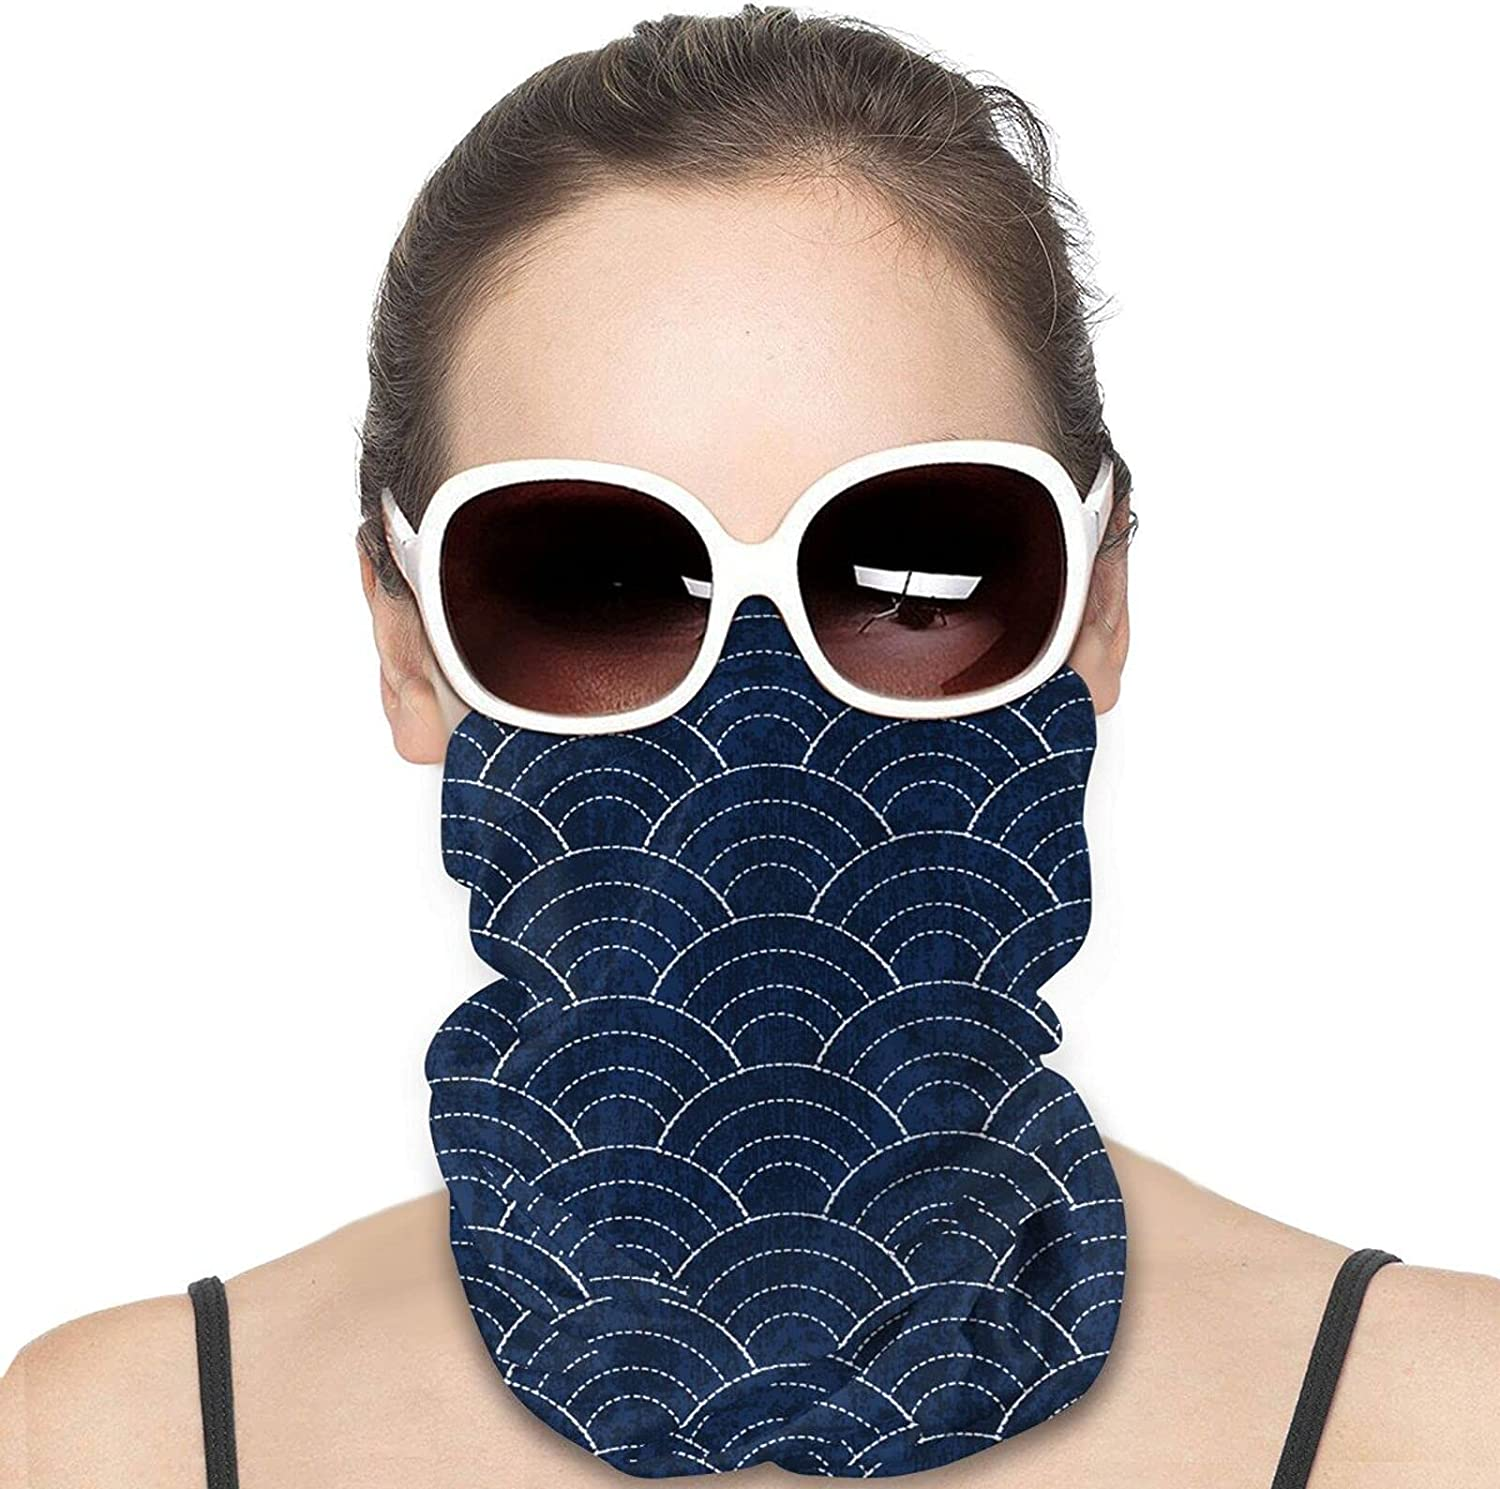 Japanese Embroidery Round Neck Gaiter Bandnas Face Cover Uv Protection Prevent bask in Ice Scarf Headbands Perfect for Motorcycle Cycling Running Festival Raves Outdoors